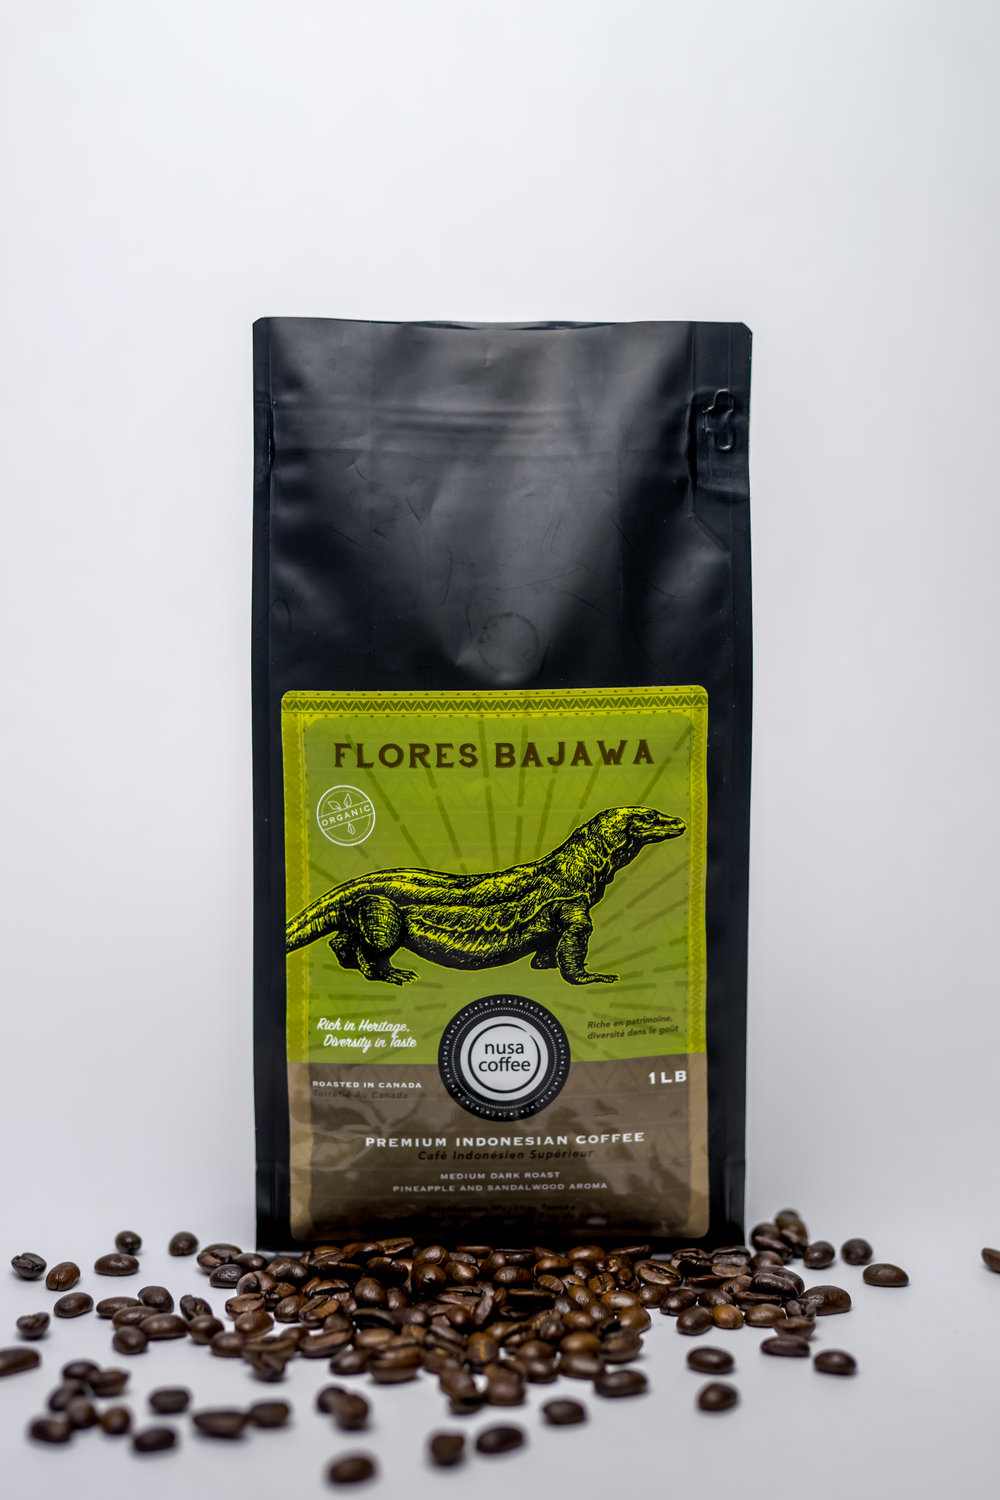 Flores Bajawa - Roasting Profile: Medium - this allows the emergence of both roasted and green beans flavours.Origin: Family-owned farms located in the Ngada region of Flores, one of the big islands in the Lesser Sunda archipelago of Indonesia. Coffee plants are grown in volcanic loam at altitudes as high as 1600 metres. Attention to detail is reflected in the ripe cherry selection, raised bed drying, and triple hand-sorting. Notes of pineapple and sandalwood permeate.Processing Method: wet-hulled, handpicked, and dried in the sun.